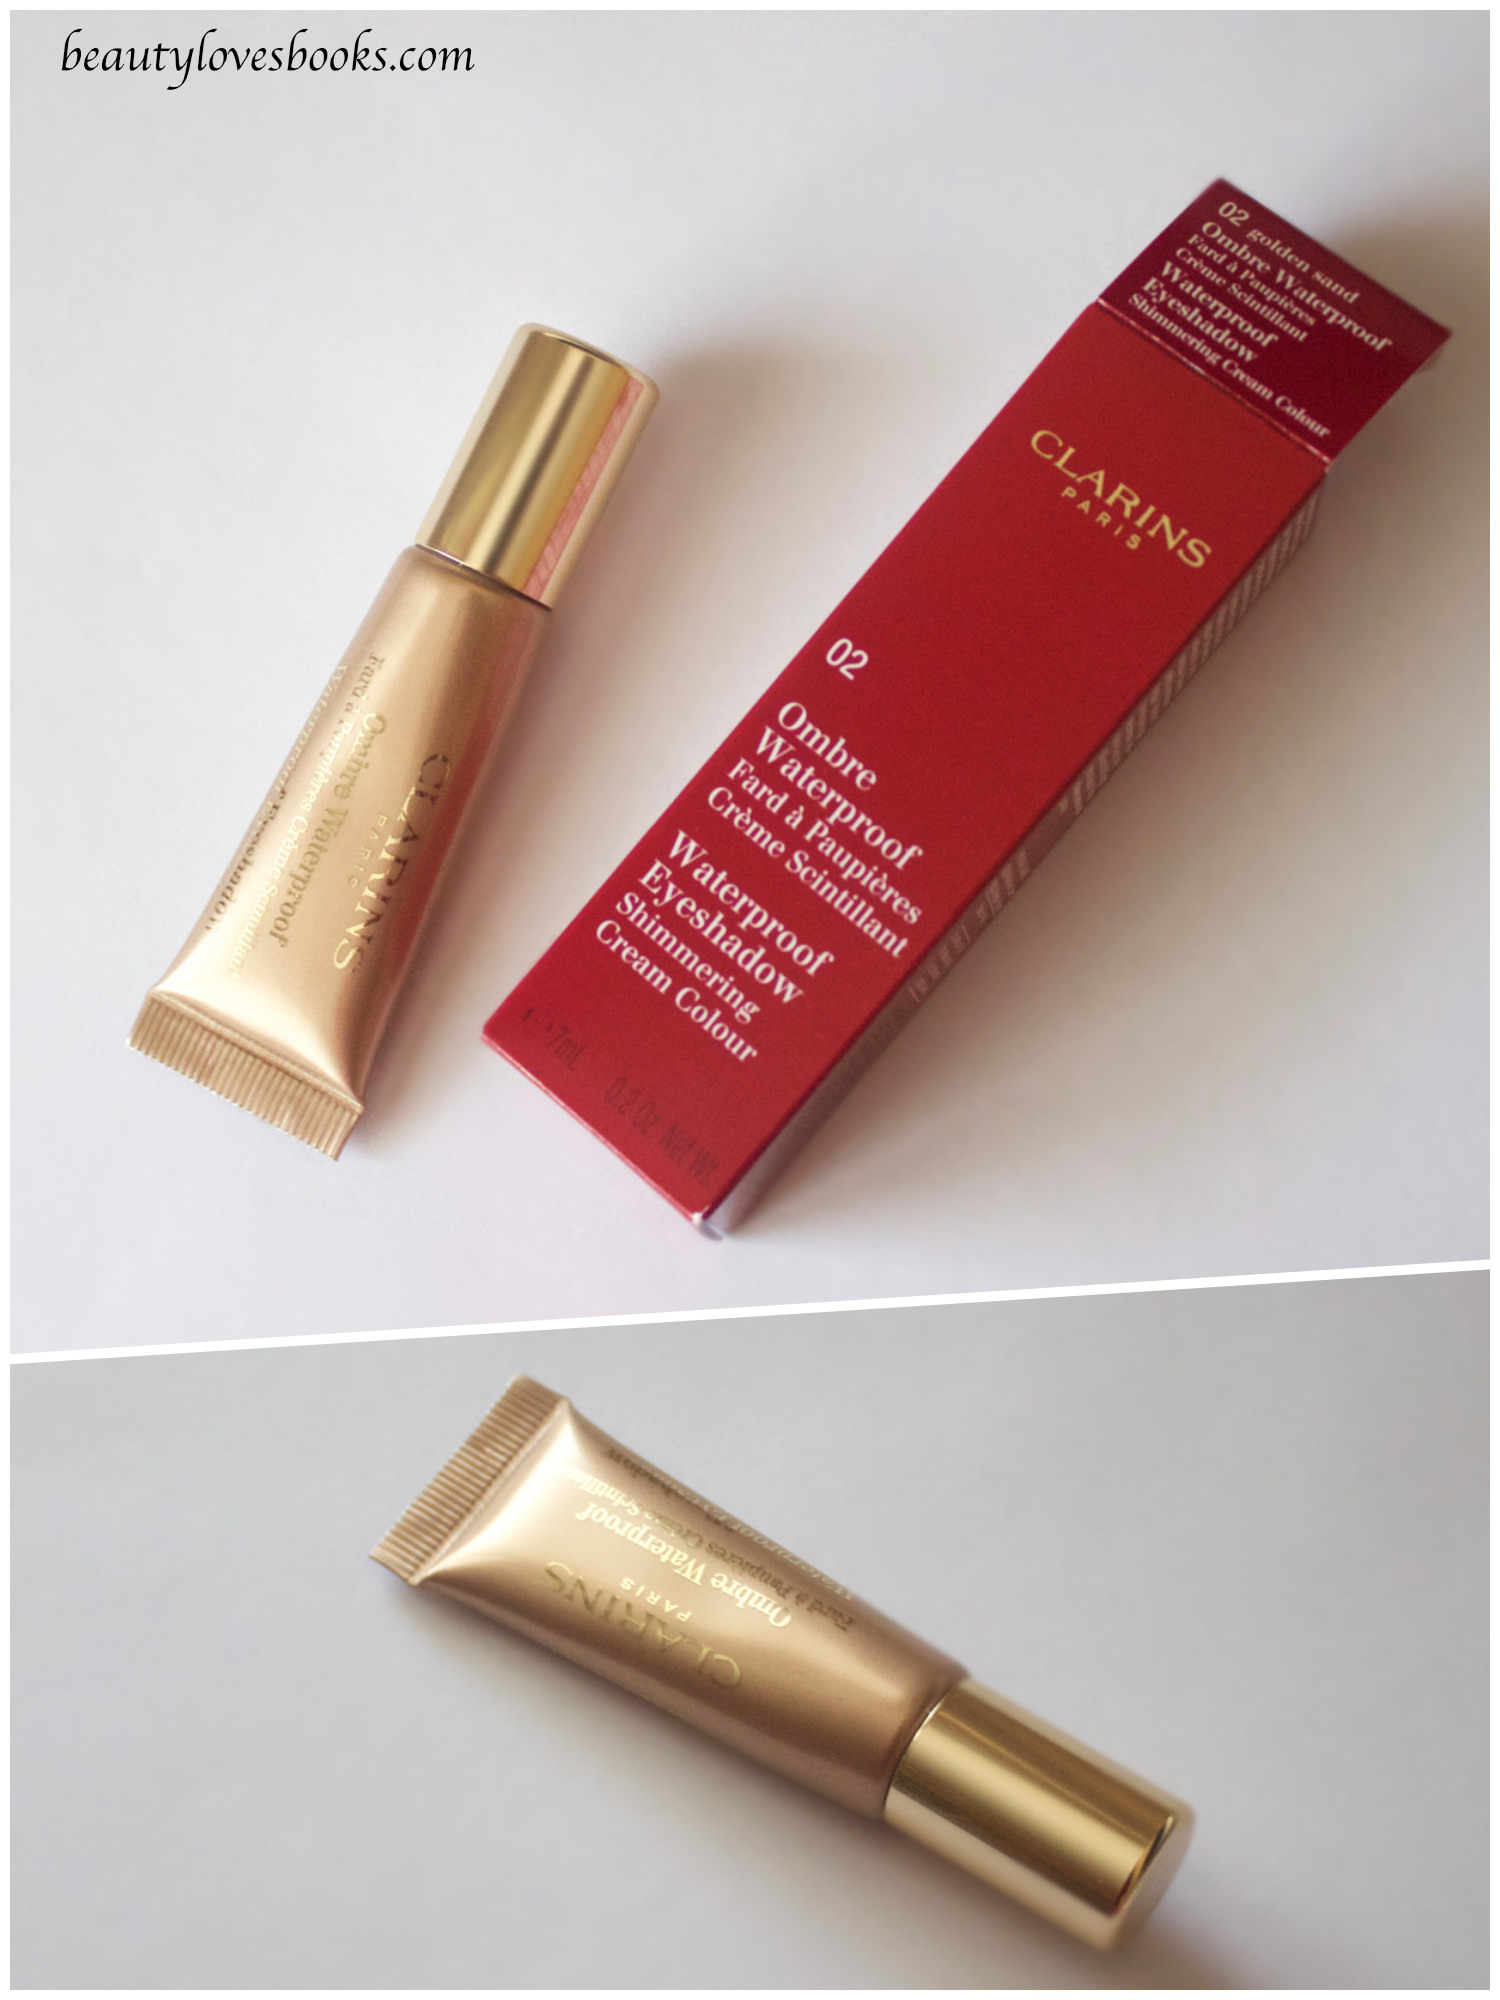 Clarins Ombré Waterproof Shimmering cream colour in 02 golden sand